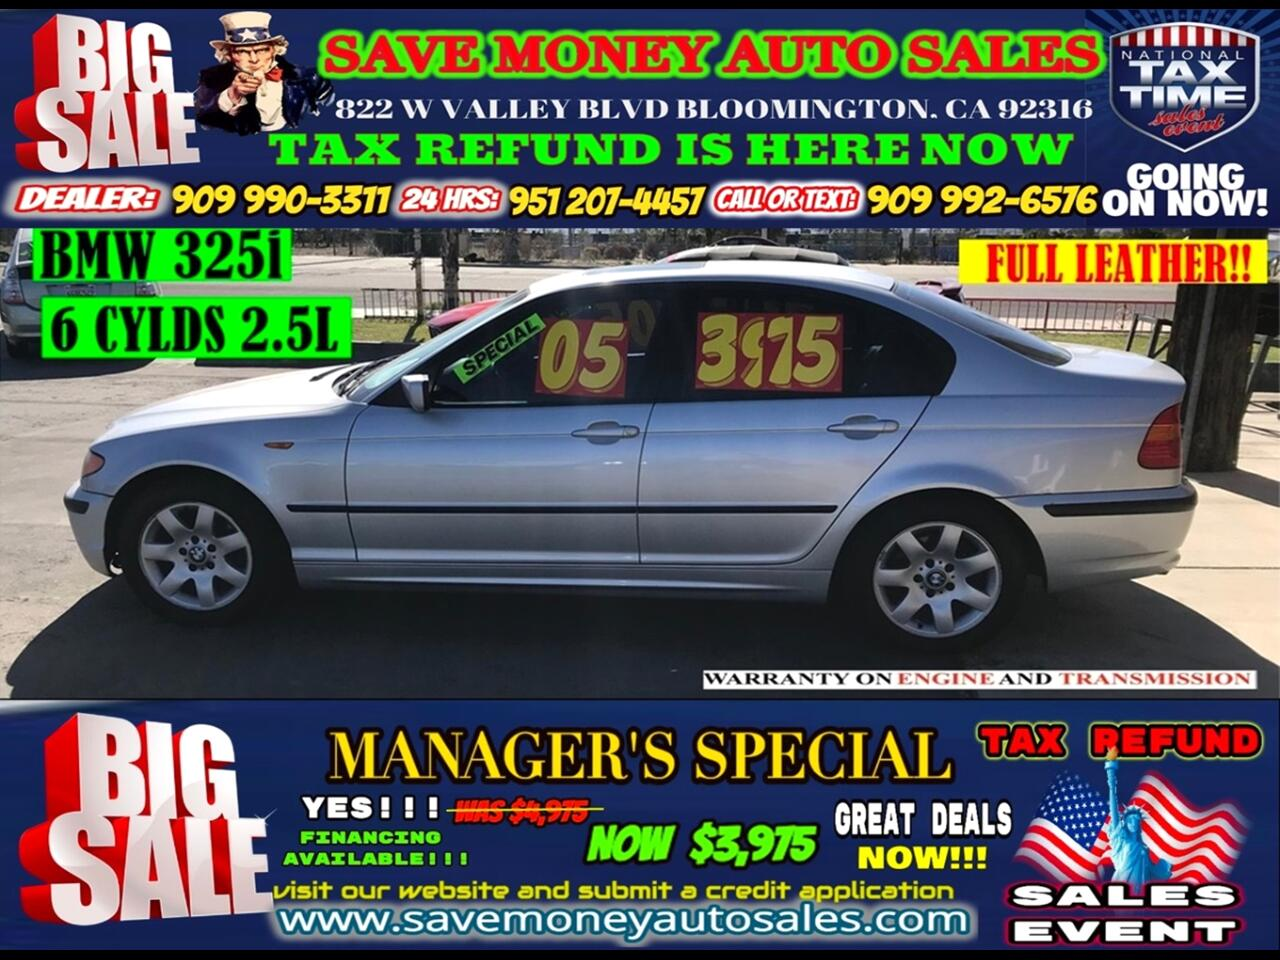 2005 BMW 3-Series 325i>6 CYLDS,MOON ROOF!!!